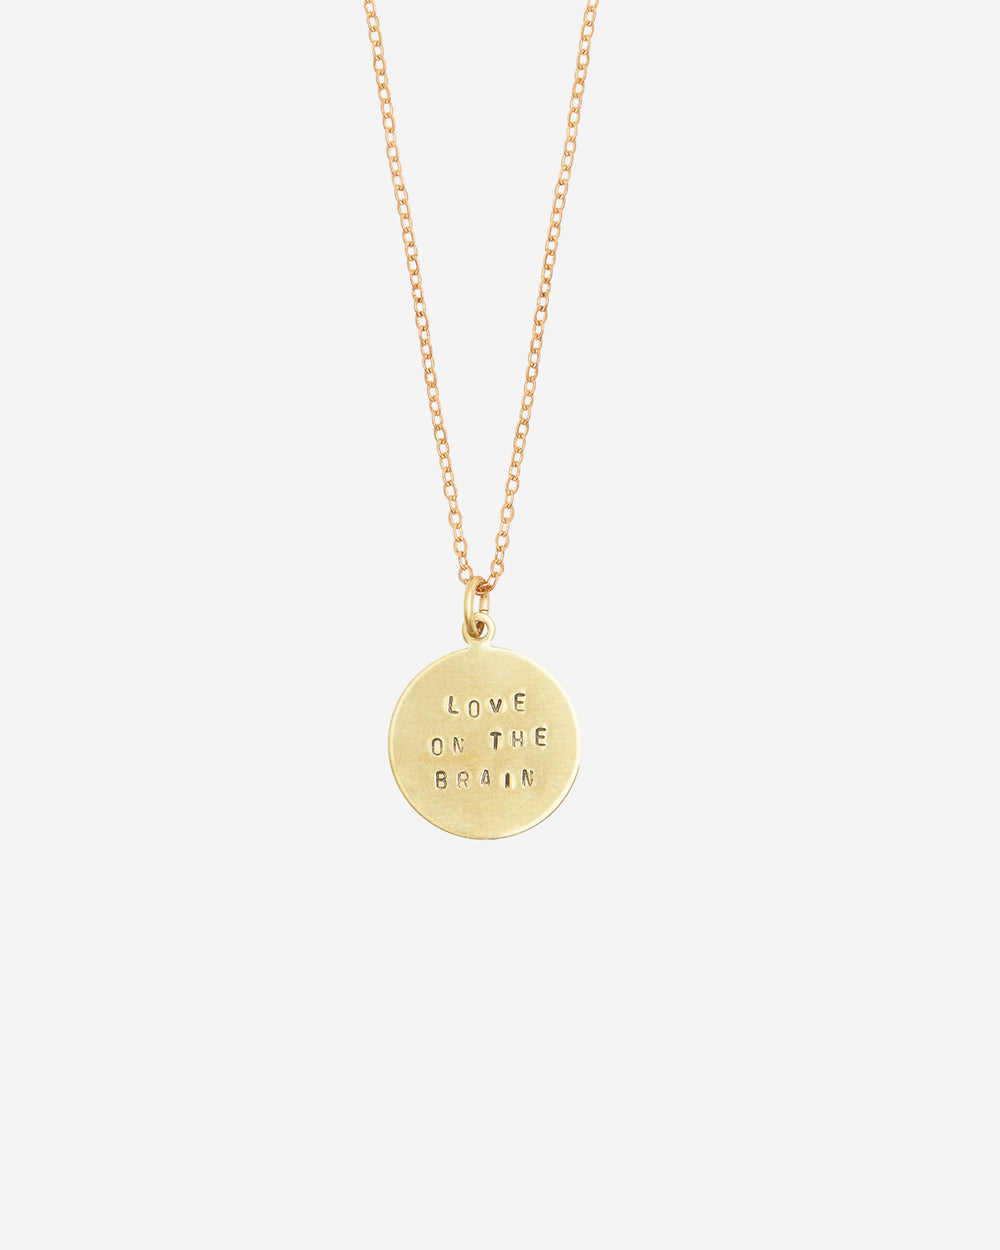 Love On The Brain Hand-Stamped Necklace